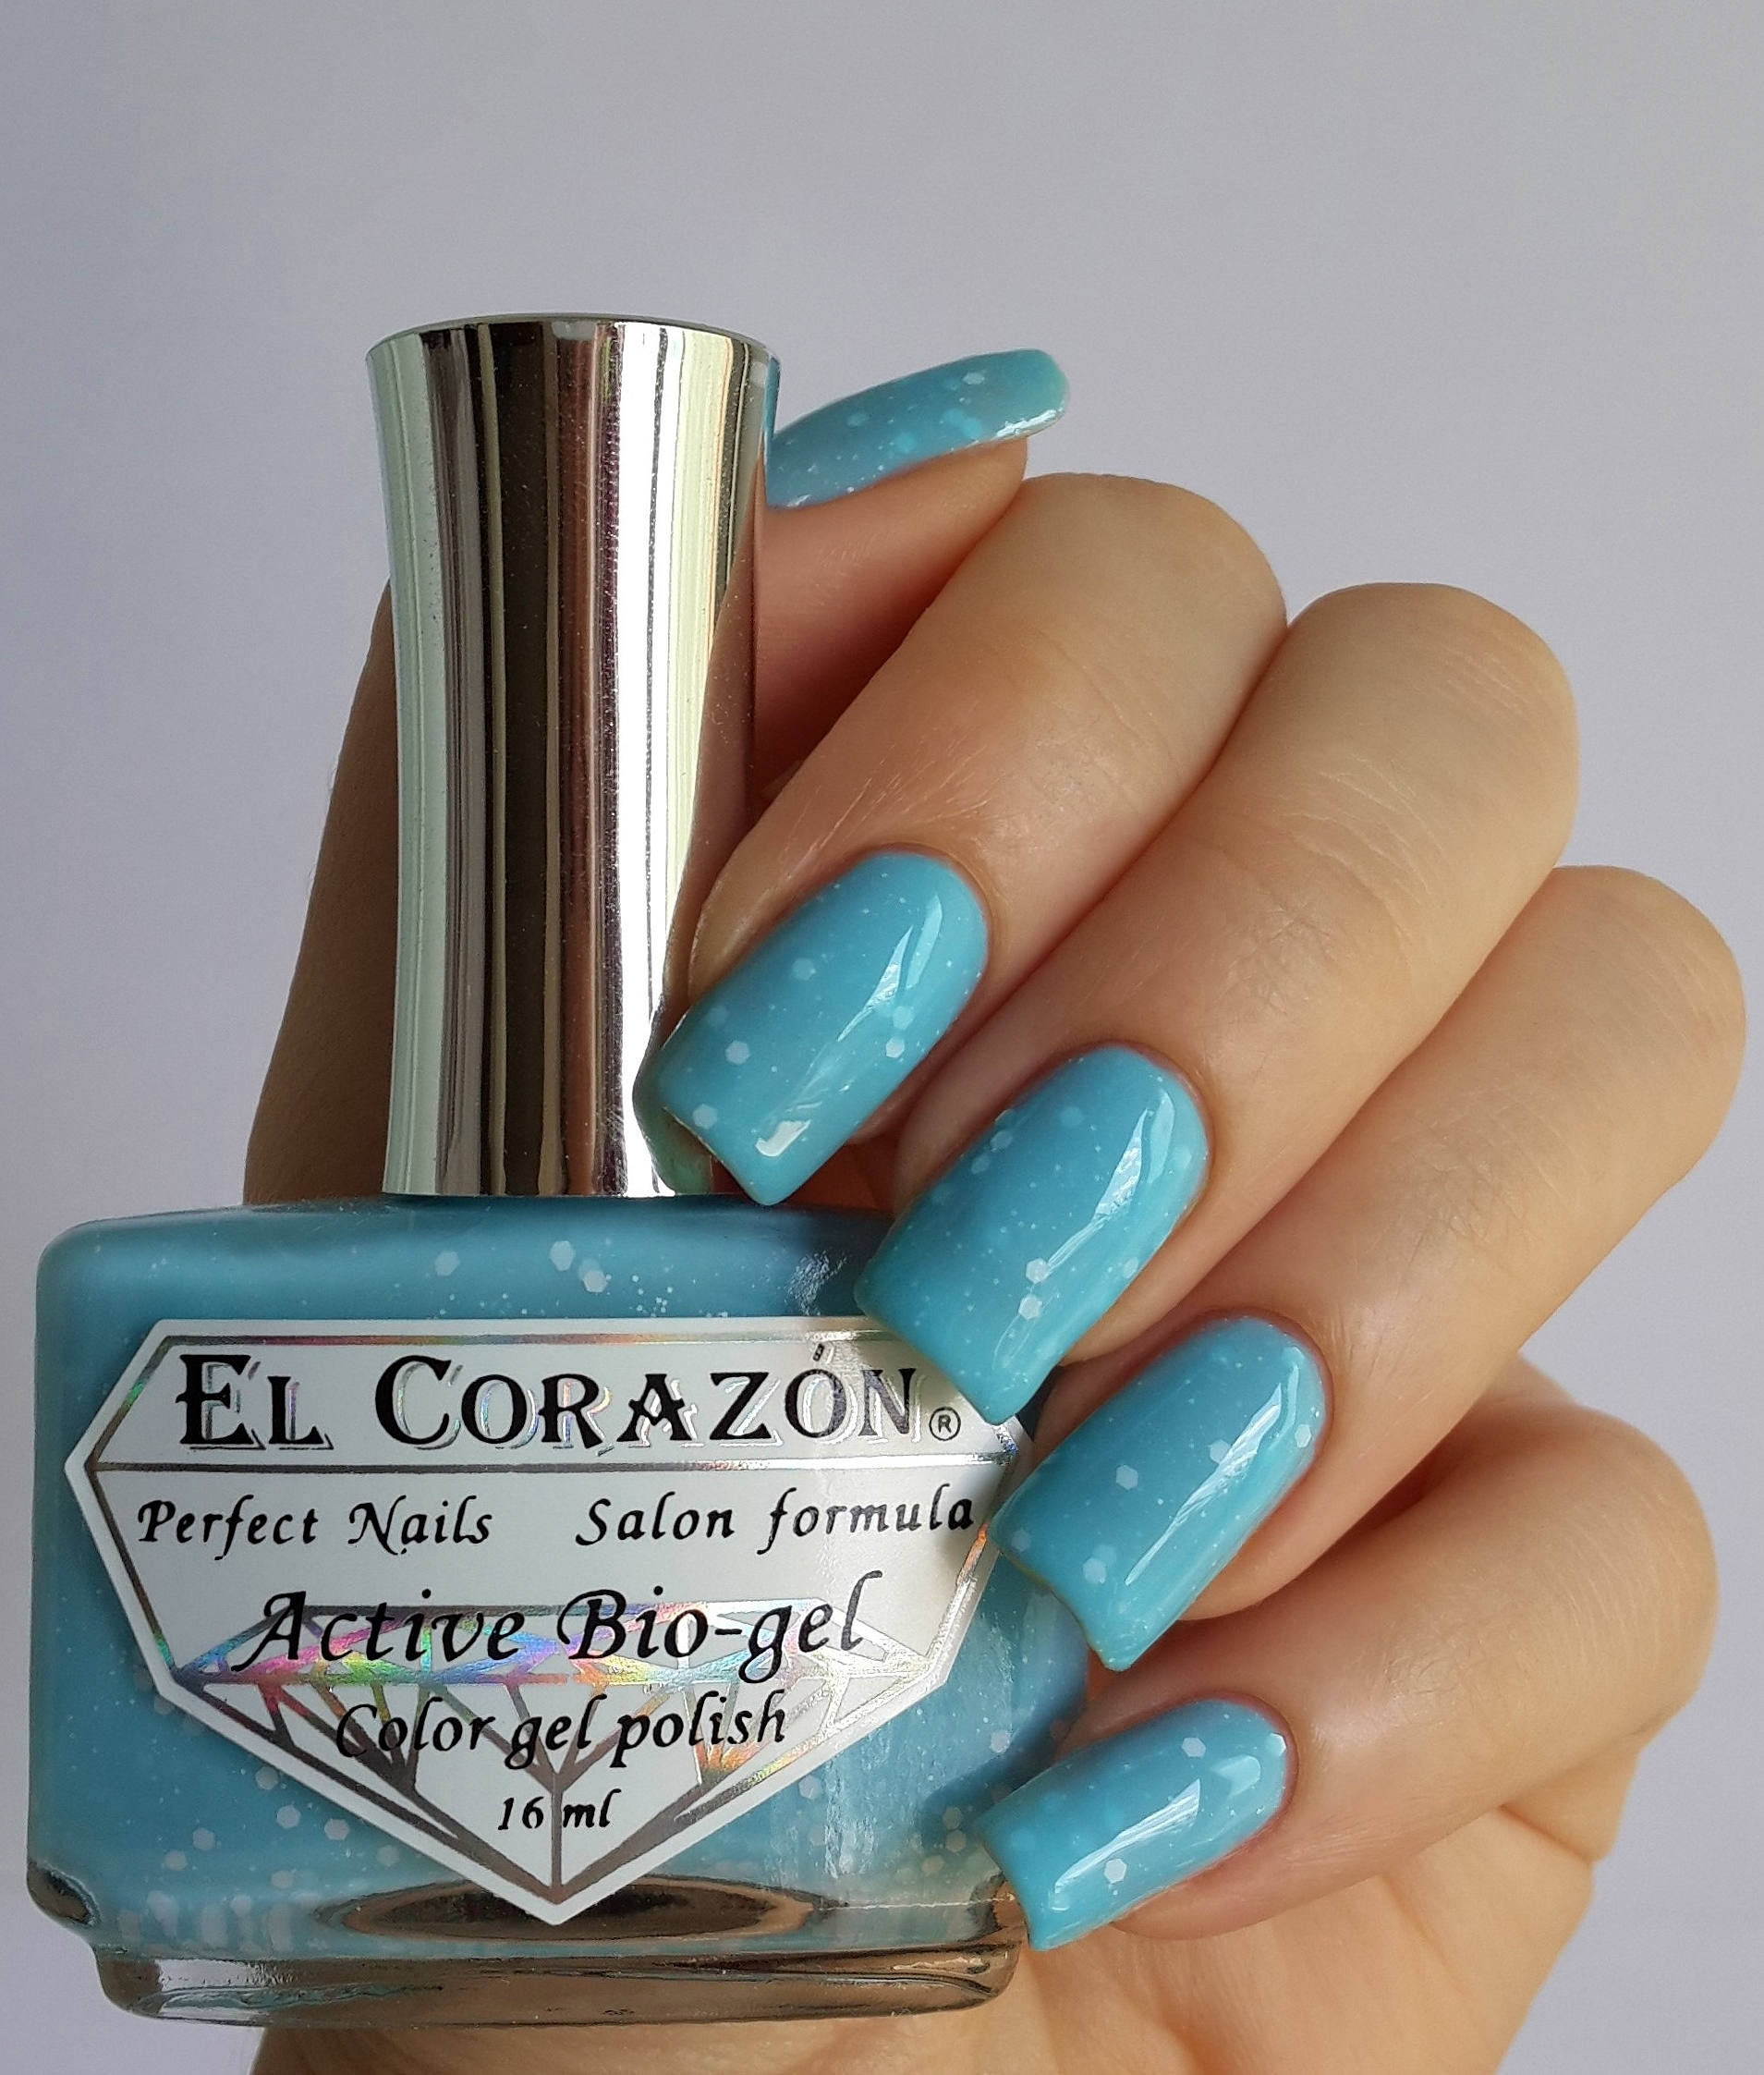 EL Corazon Active Bio-gel Color gel polish Fashion girl on a beach №423/204